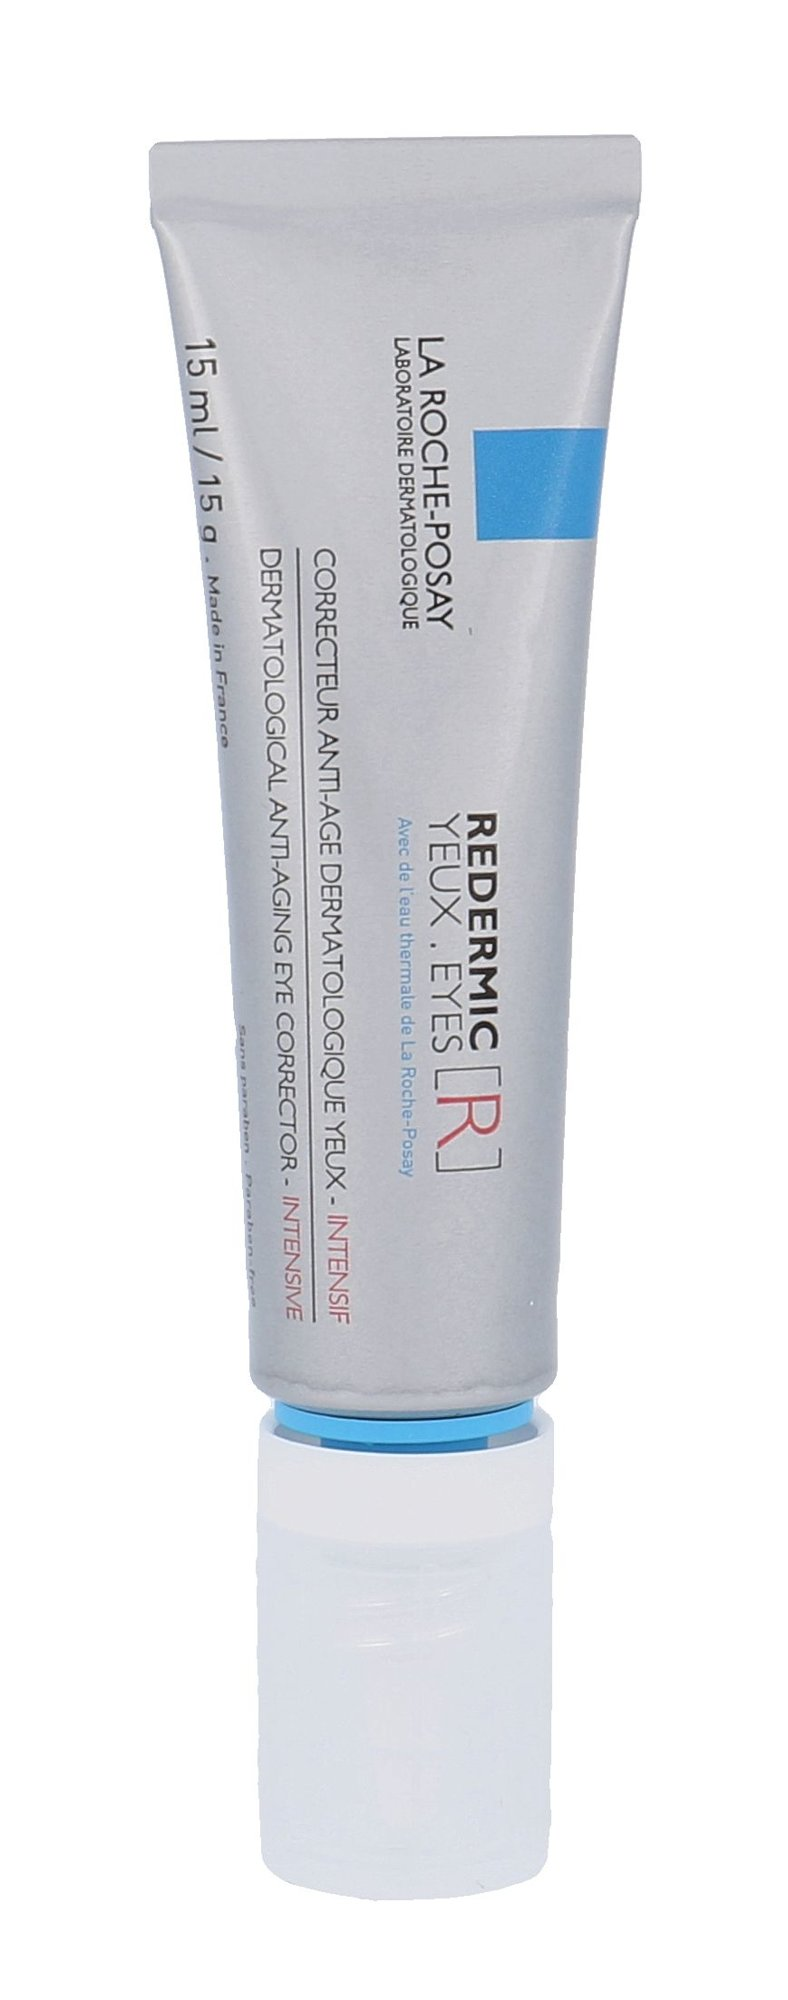 La Roche-Posay Redermic R Cosmetic 15ml